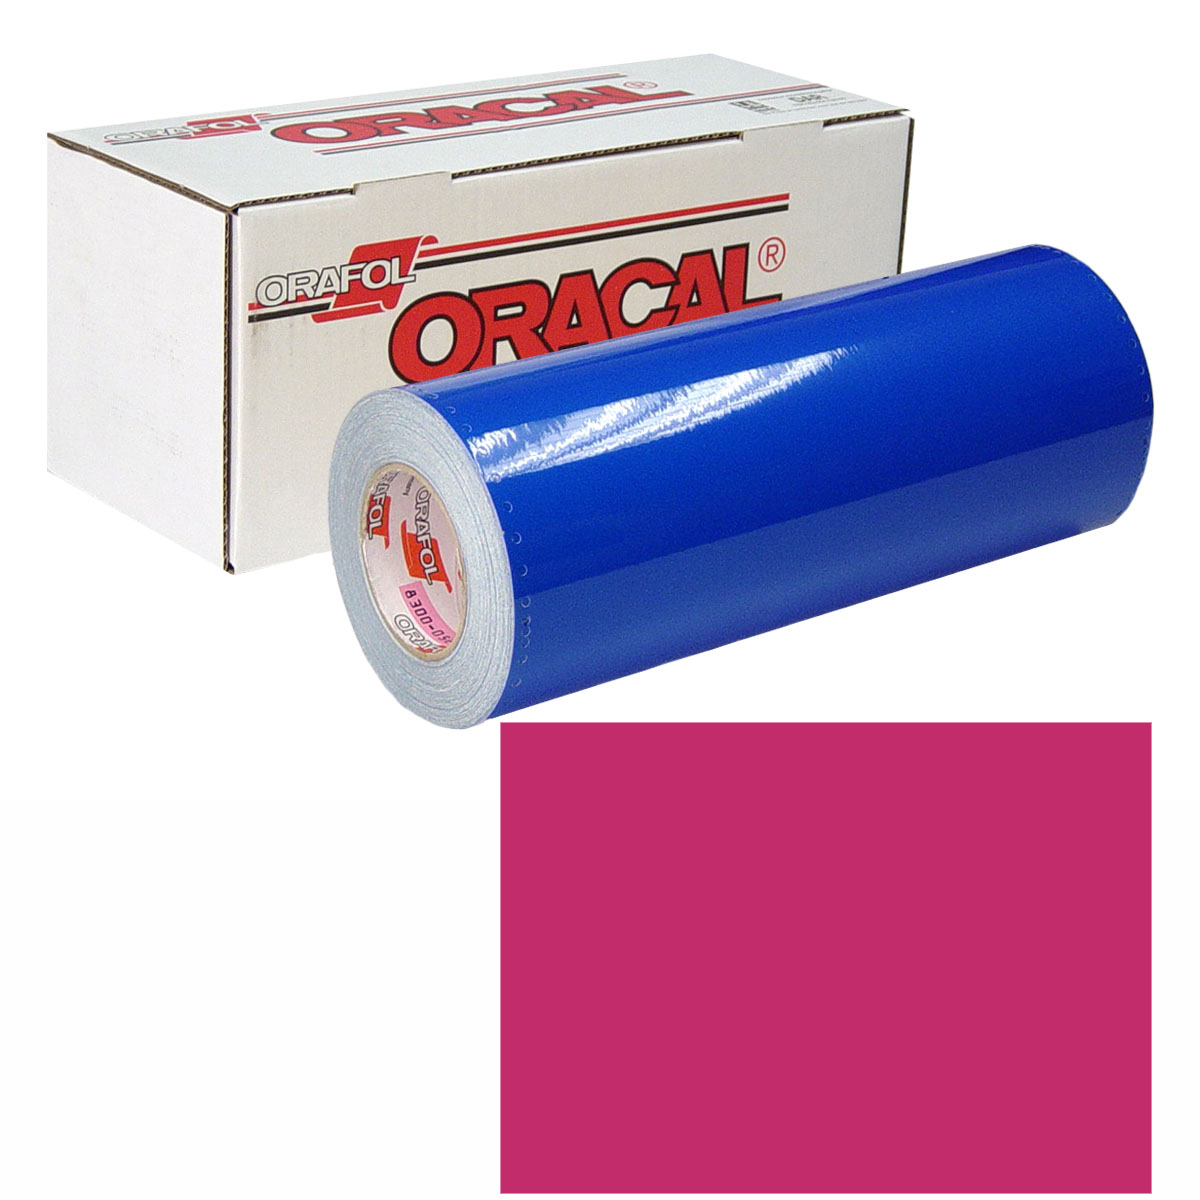 ORACAL 631 15In X 50Yd 041 Pink